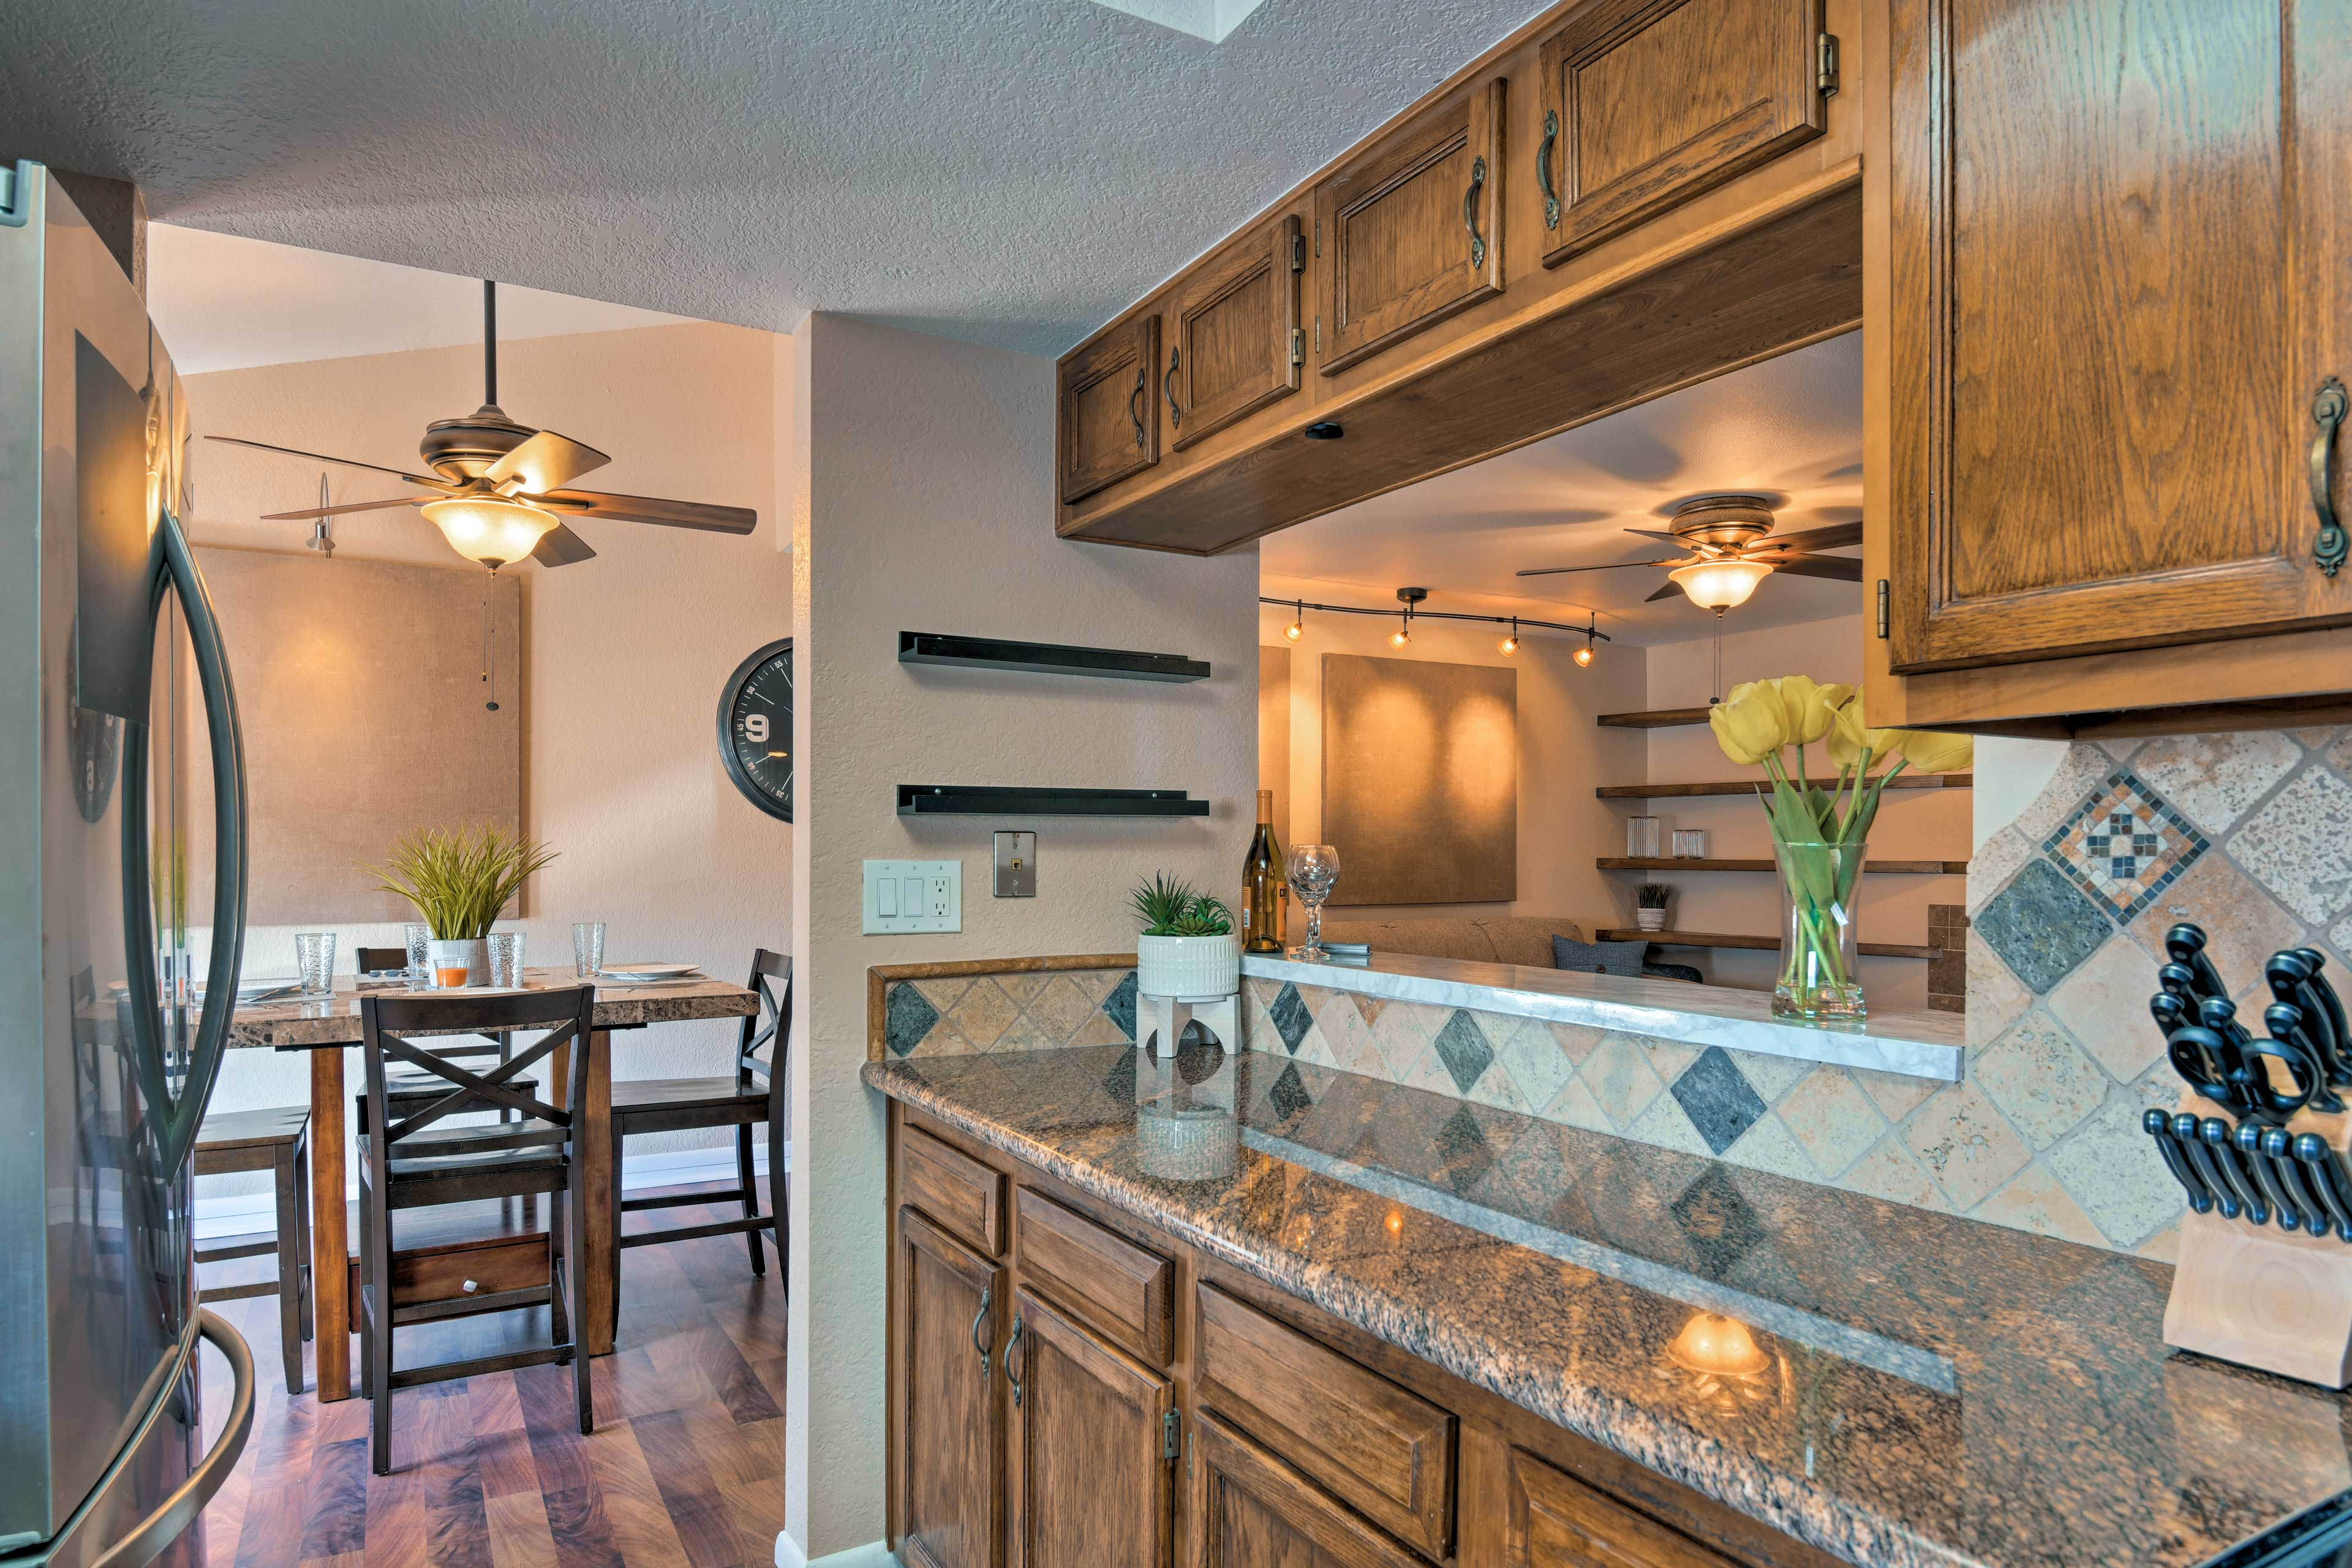 You'll have no trouble keeping everyone full and happy in this kitchen!